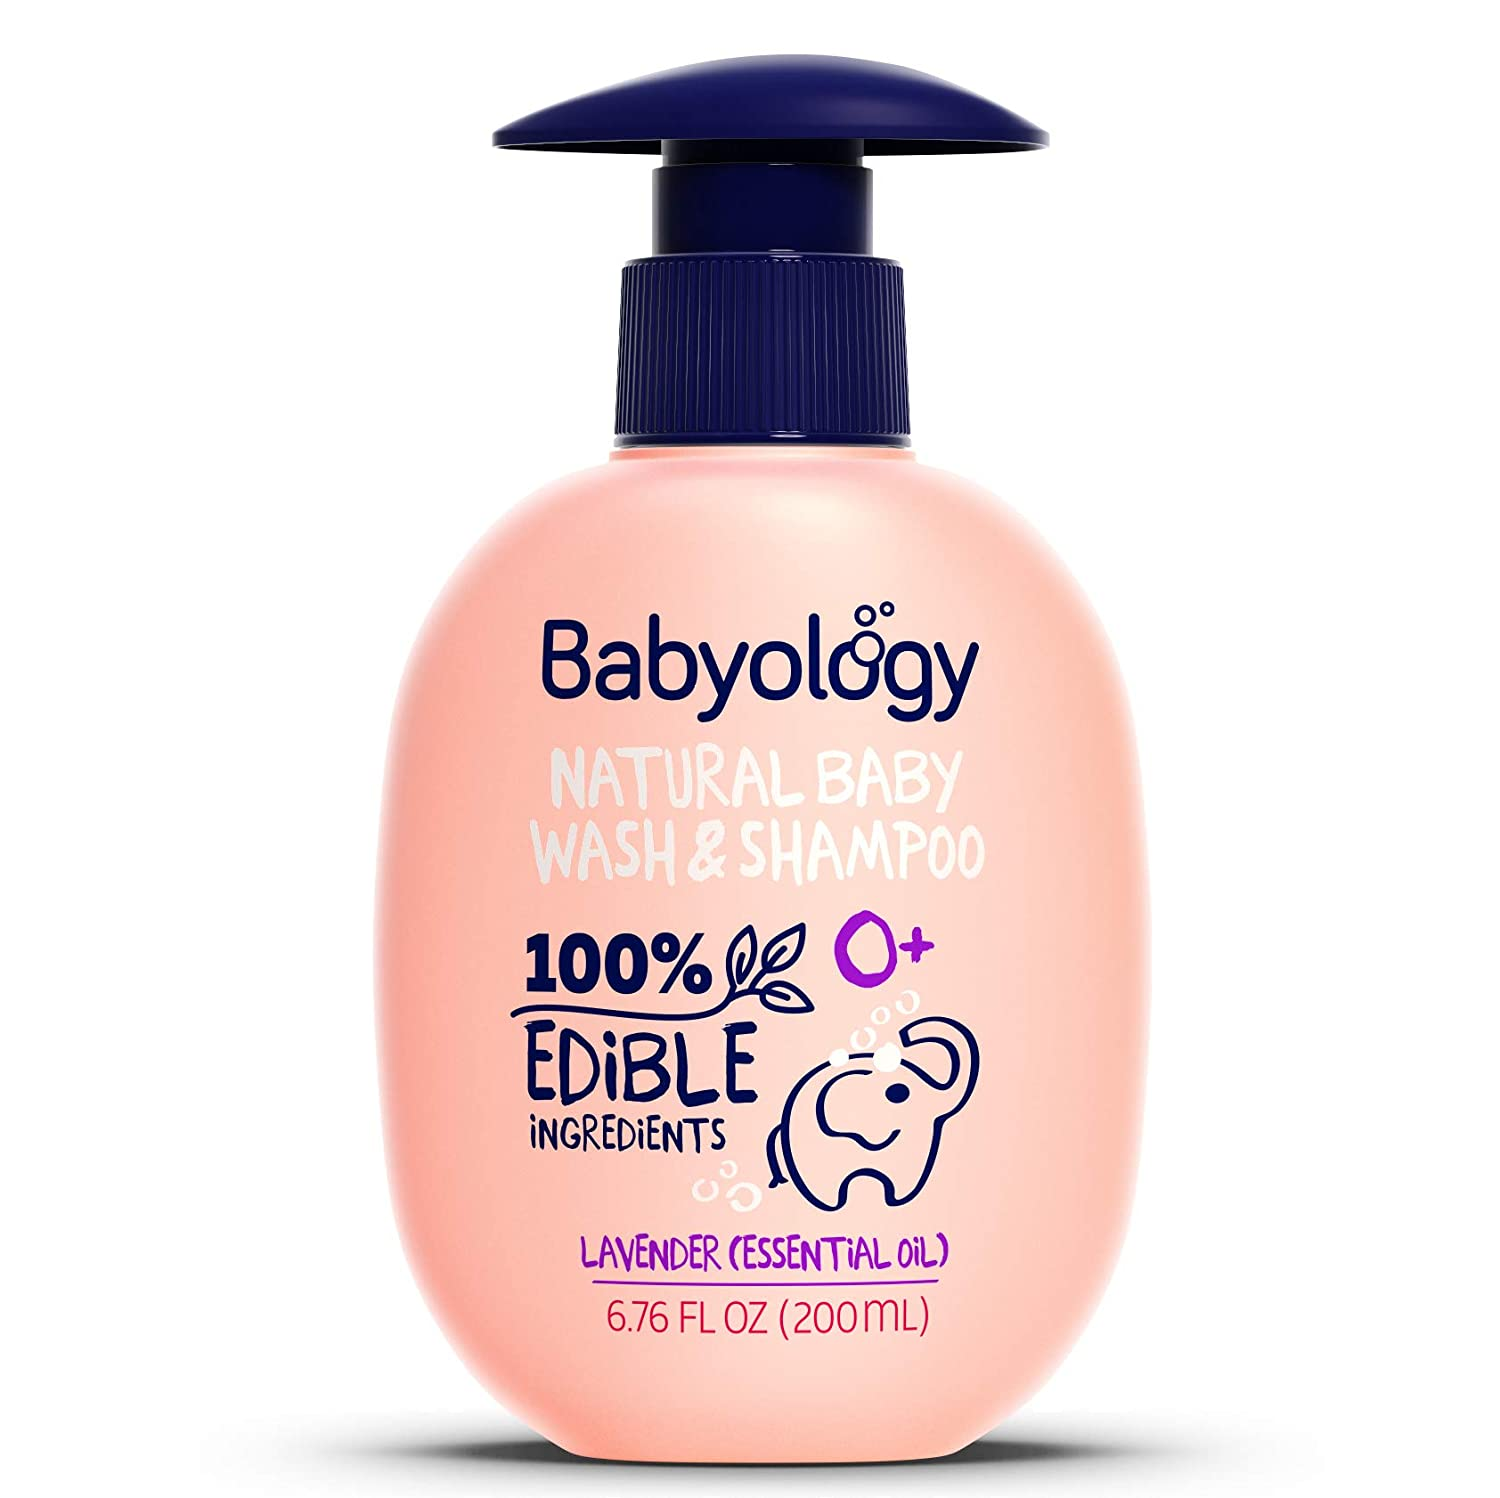 Babyology All Natural Baby Wash and Shampoo - 100% Edible Ingredients - with Organic Lavender Essential Oil (Fragrance Free) – Good for Sensitive Skin -Tear Free - Non Toxic (Scents & Packs Vary)